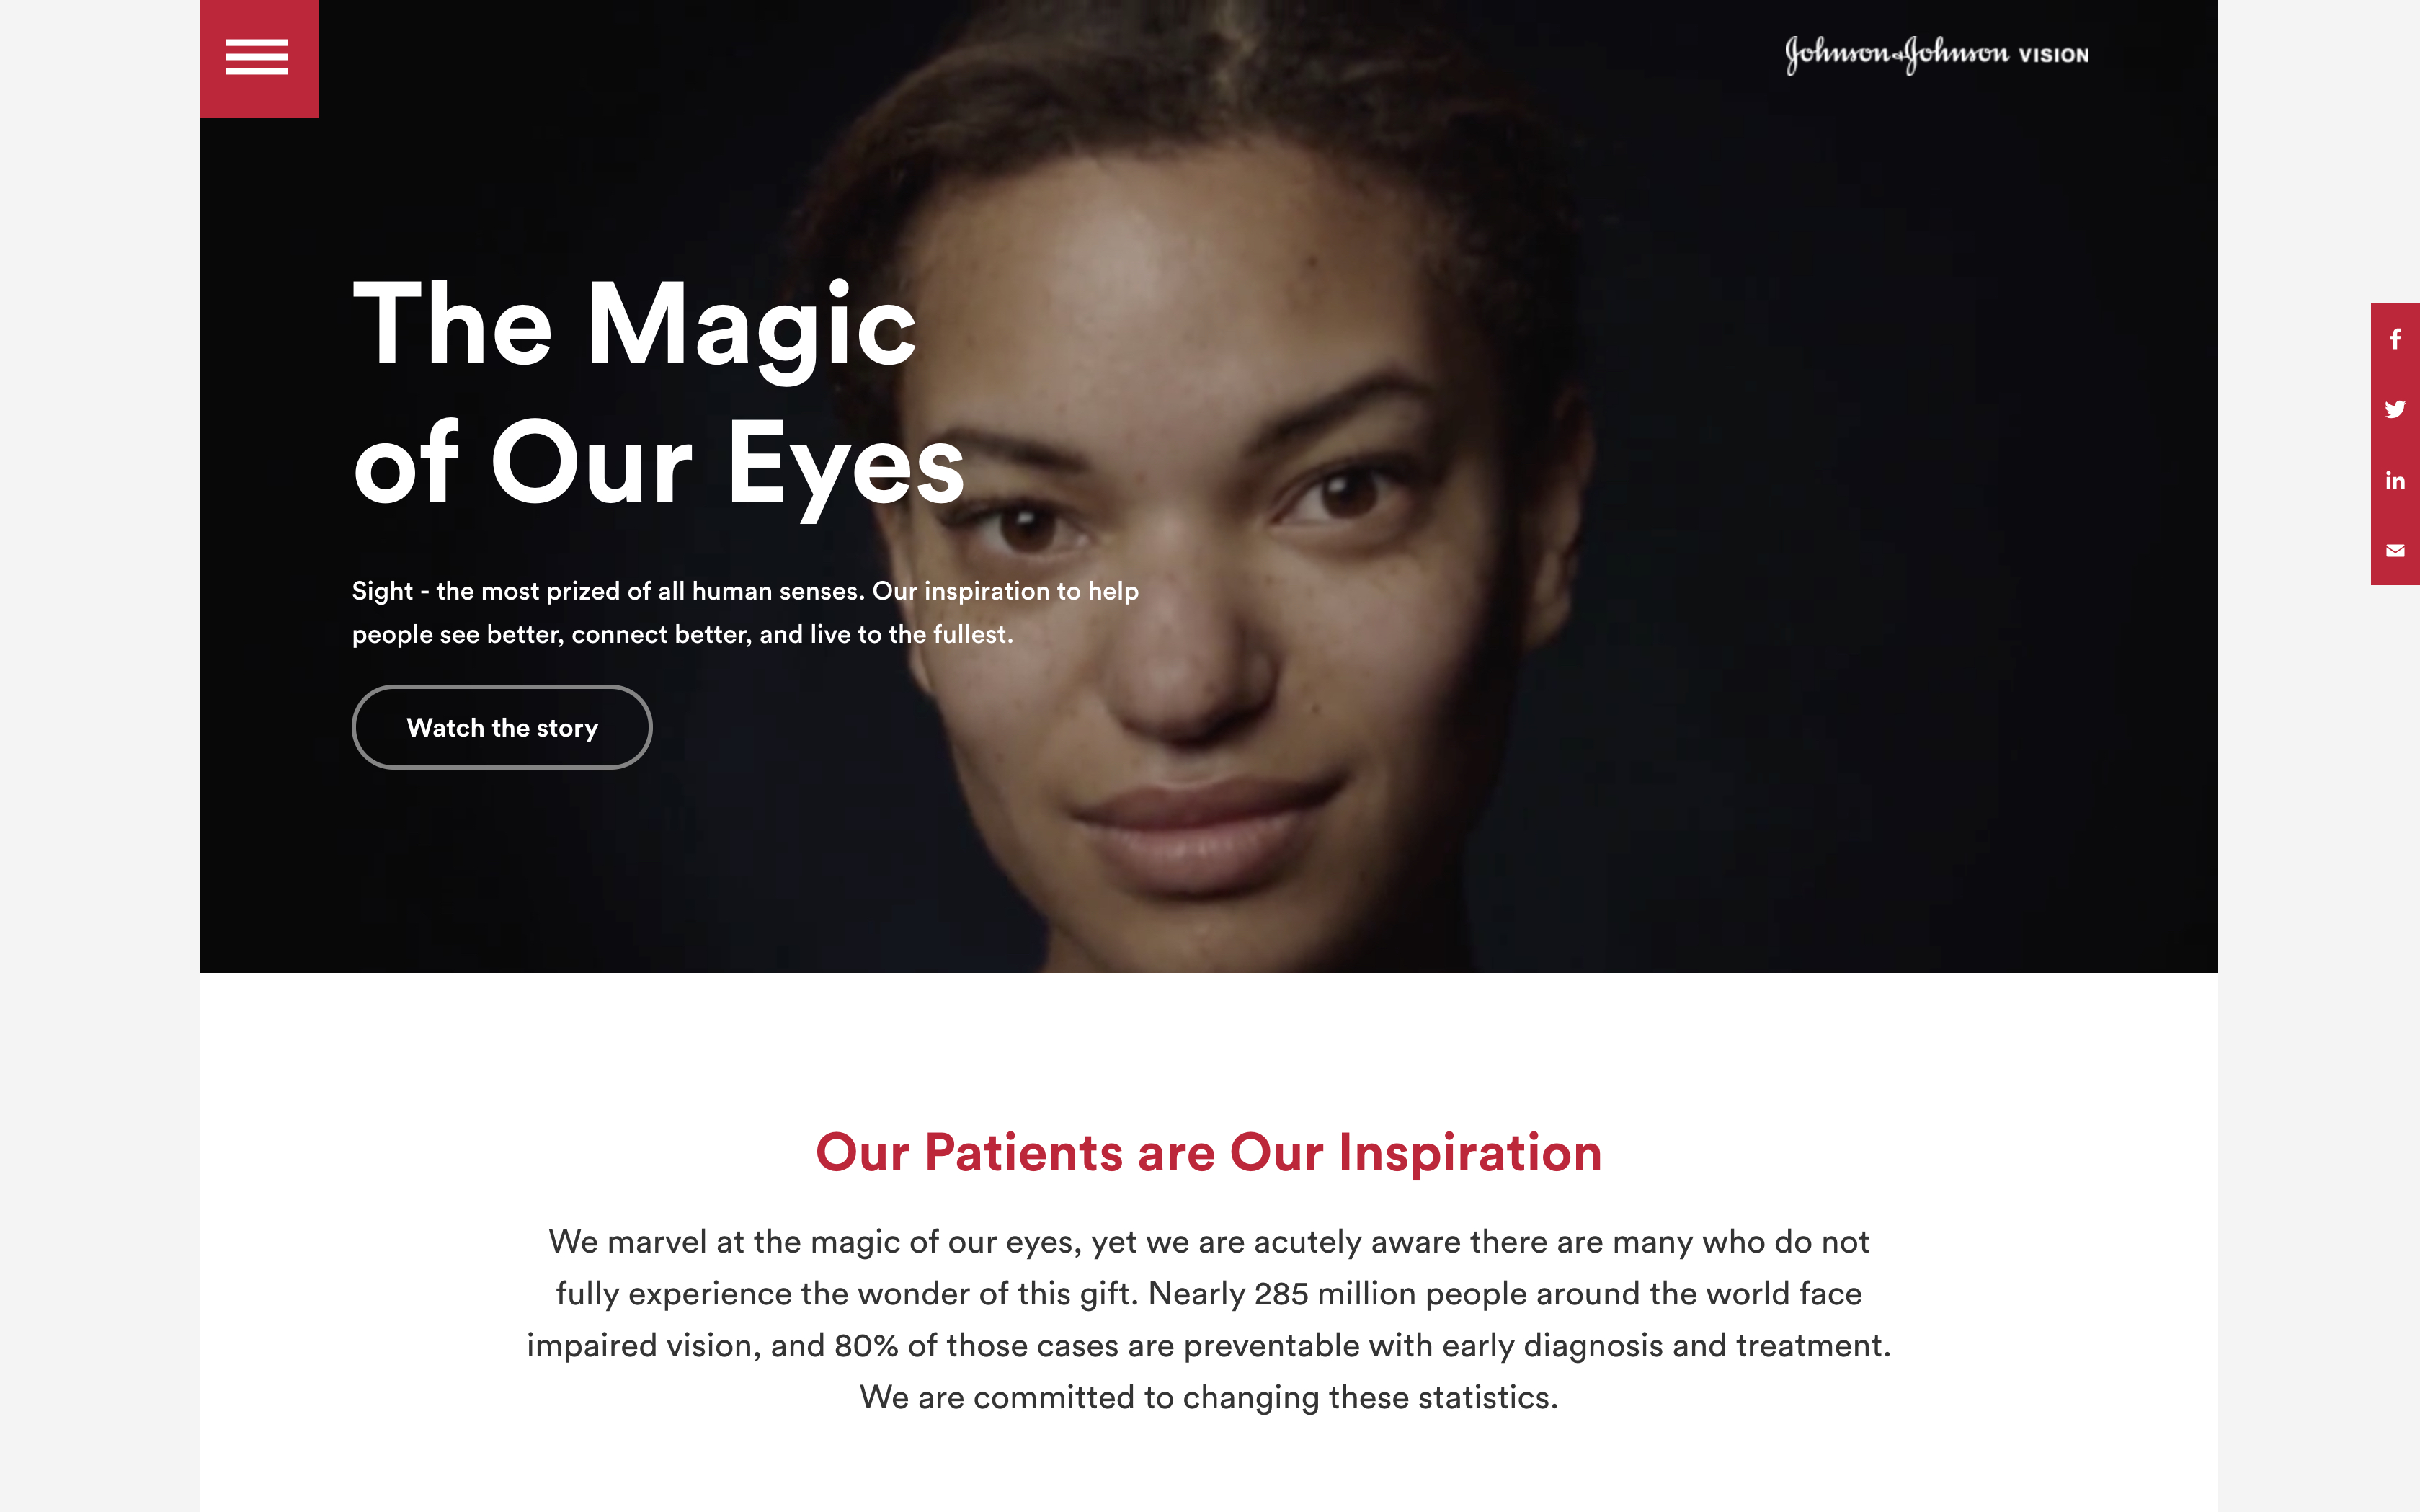 Expanding J&J Vision's new corporate site launches with a little eye 'magic'